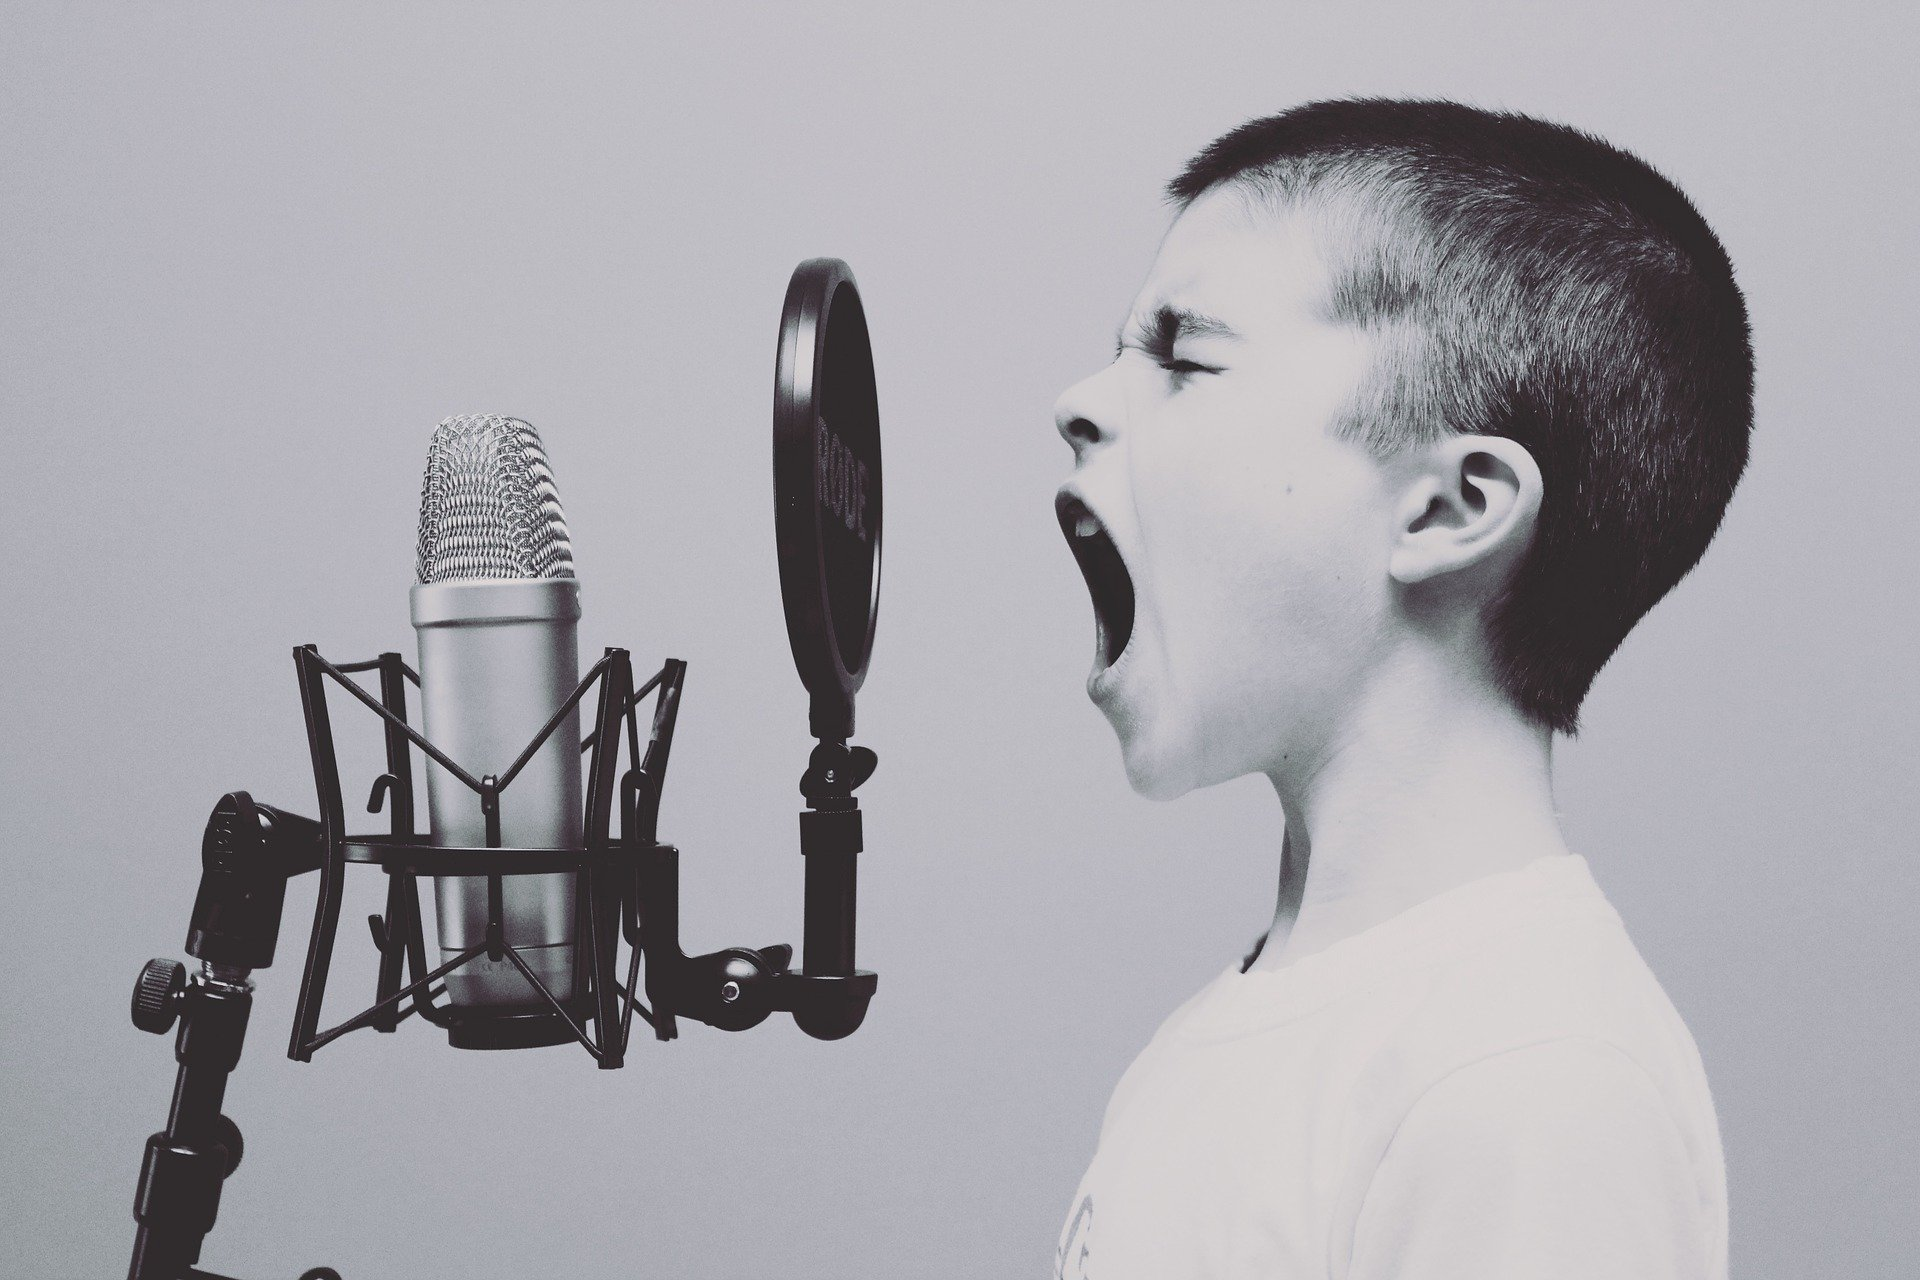 Boy Shouting In Microphone